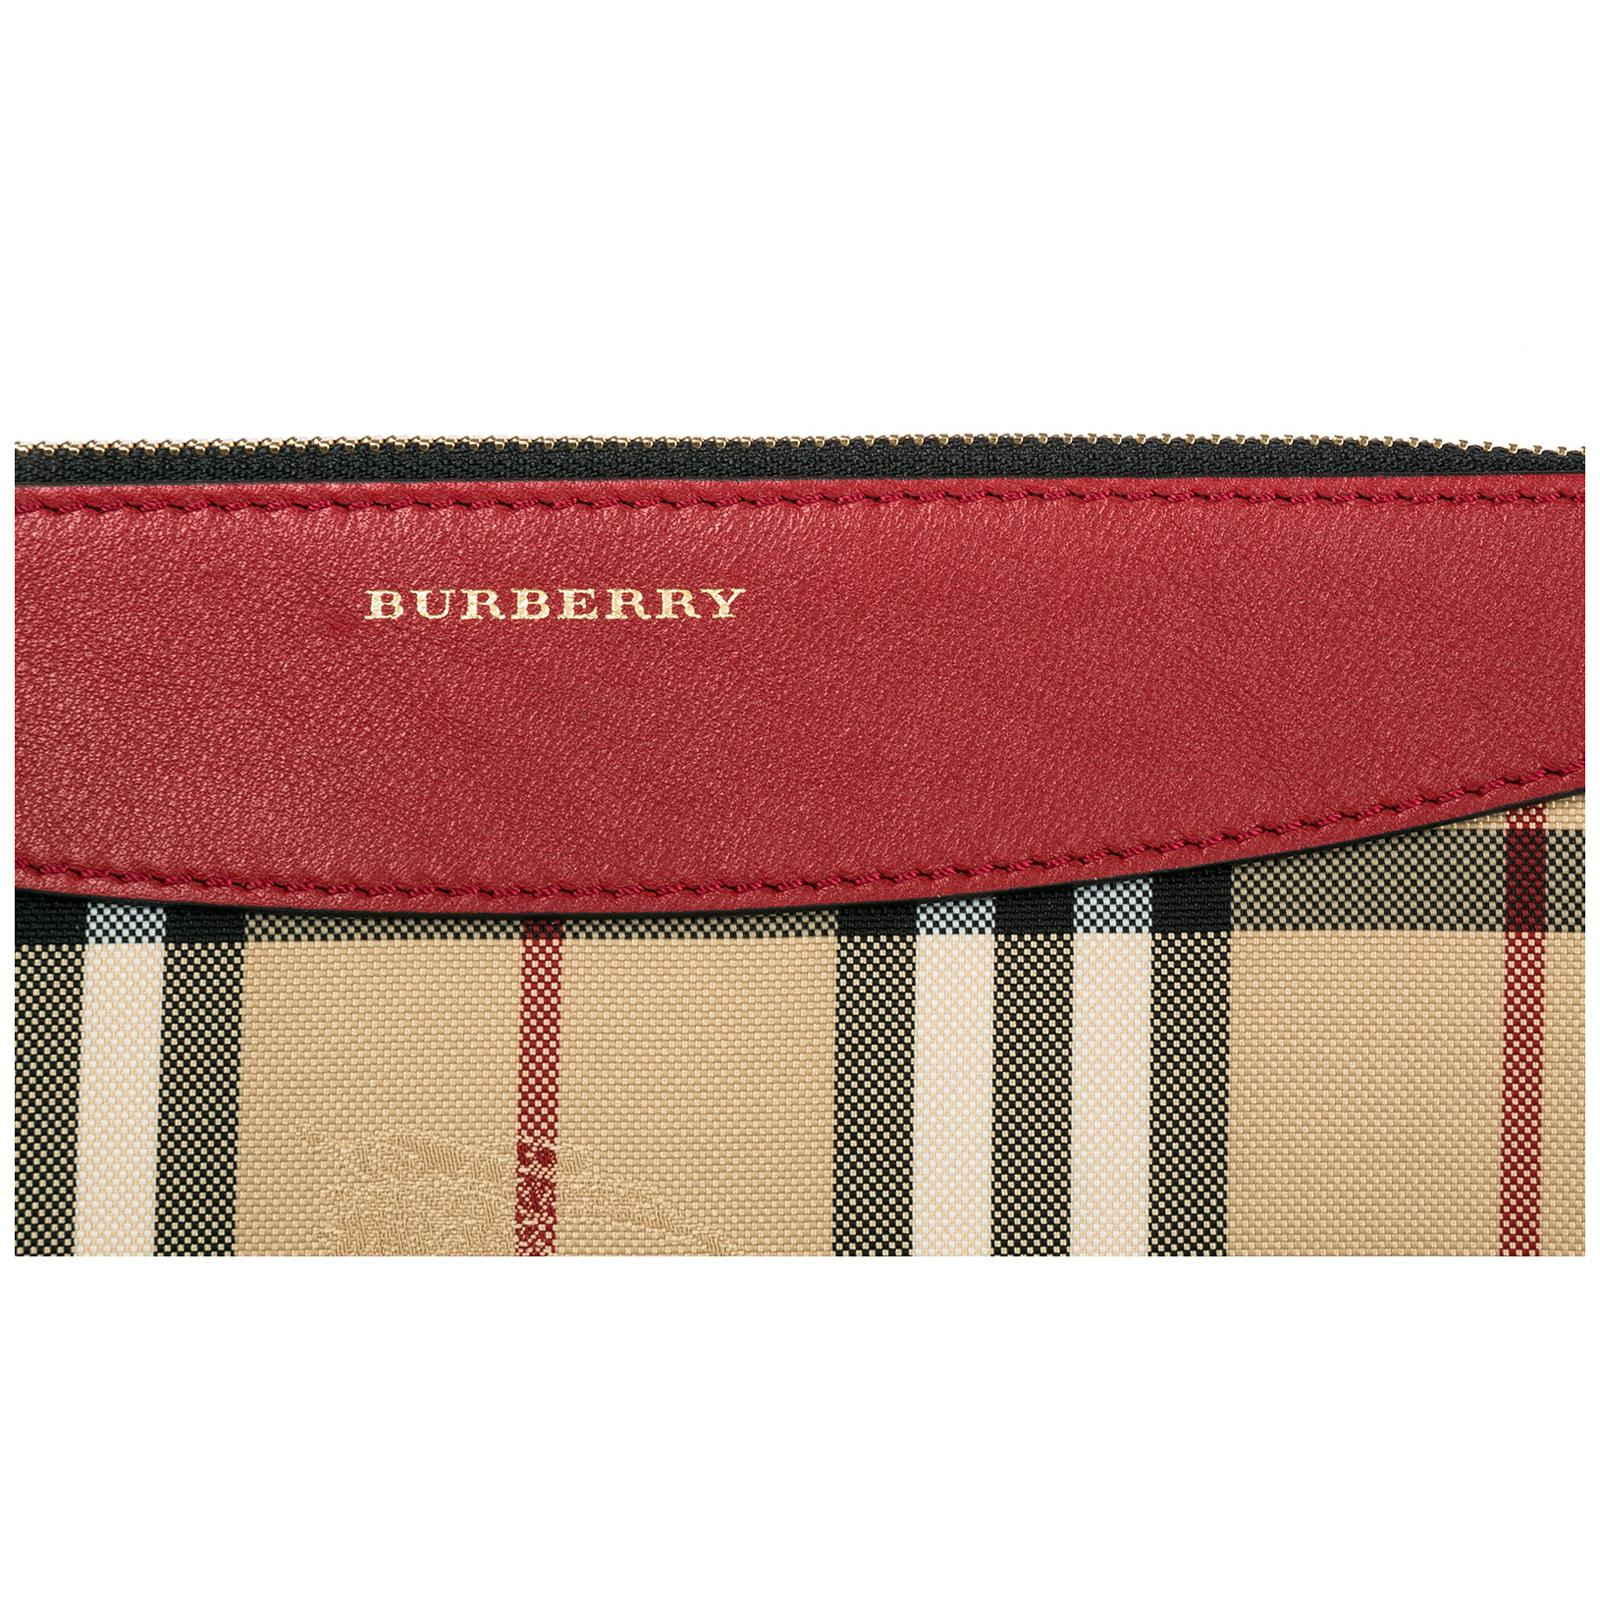 Burberry Leather Cross-body Messenger Shoulder Bag in Red